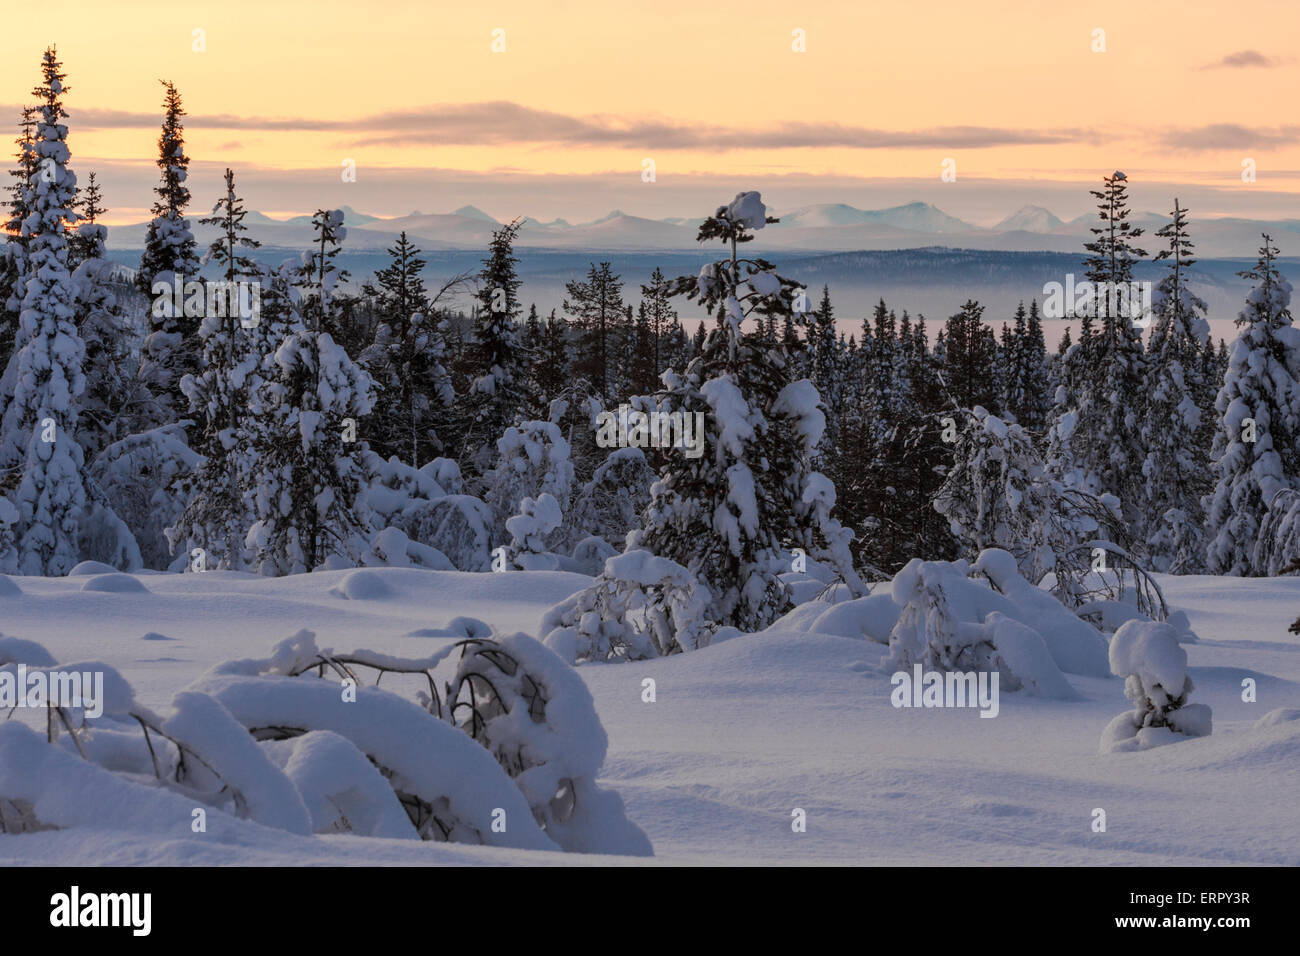 Sunset over winter landscape with The mountains of Sarek national park in the background - Stock Image